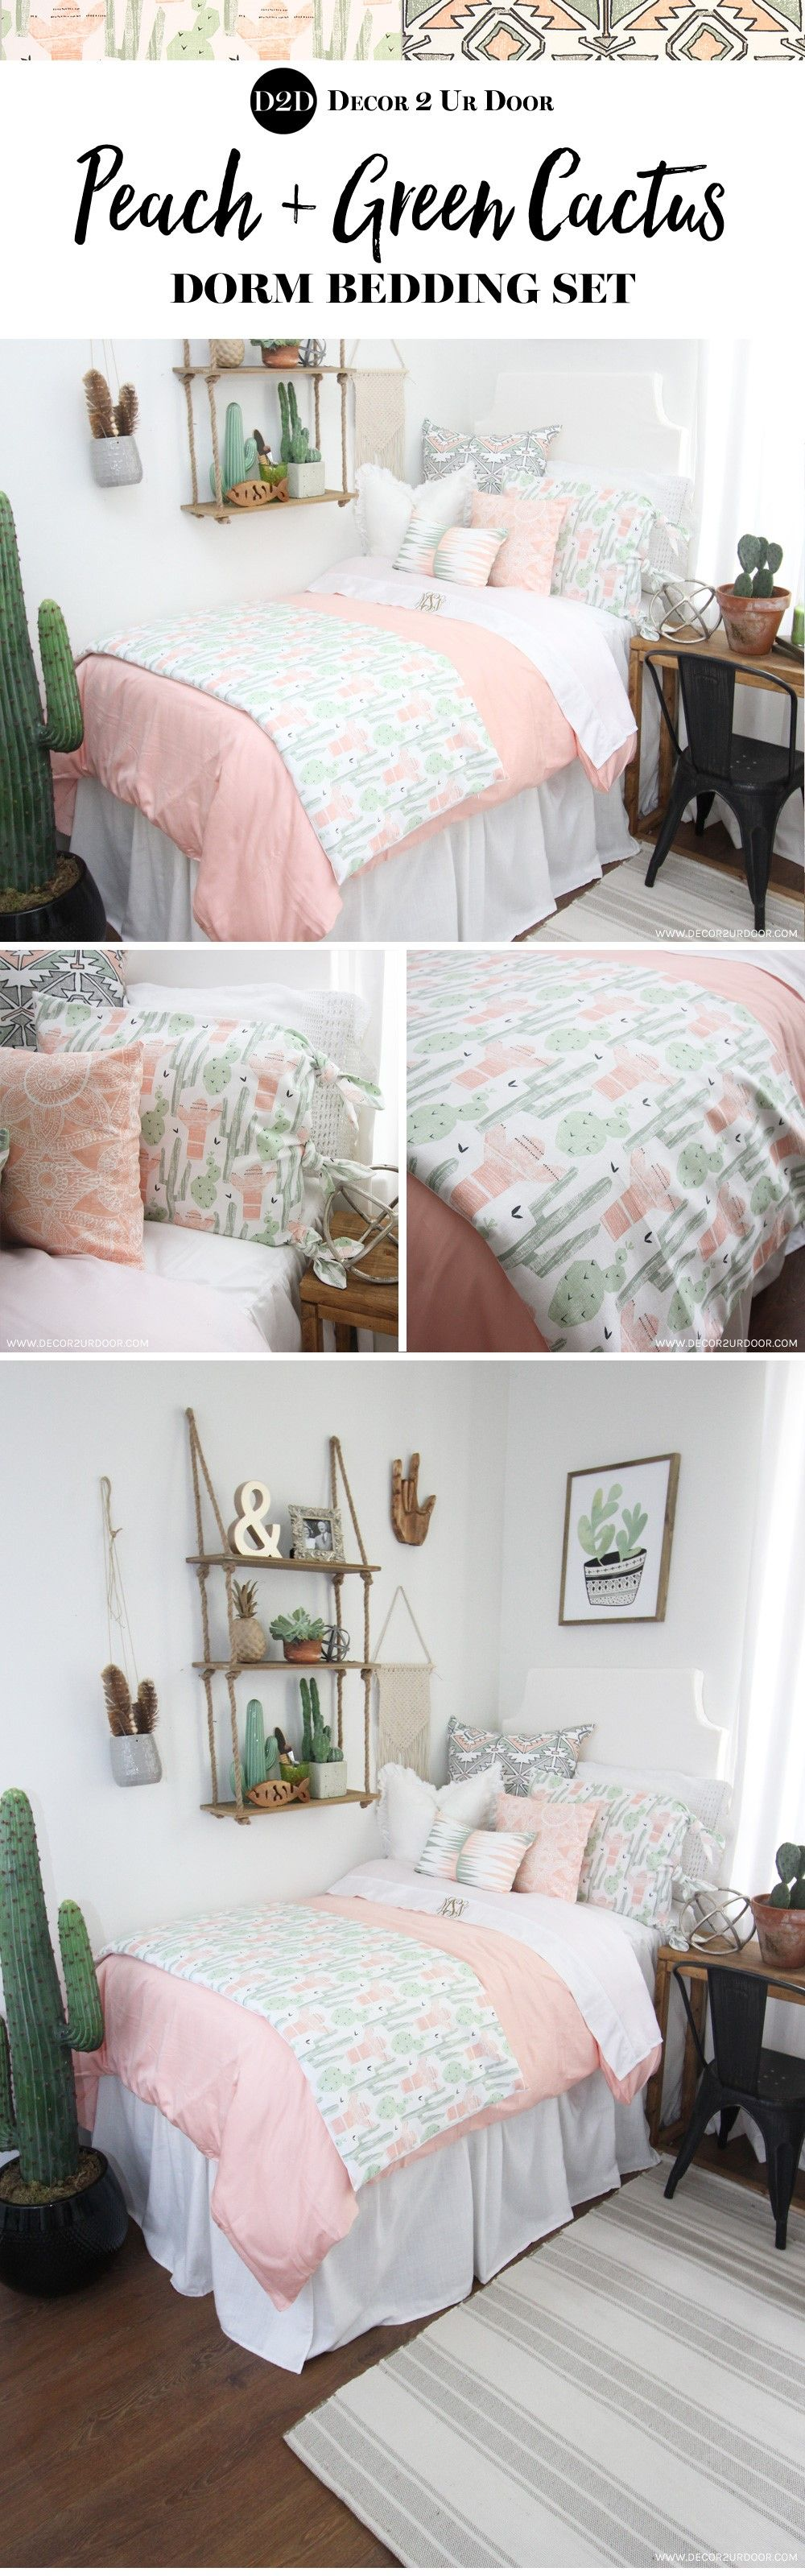 Trendy Cactus Dorm Room How Much Do You Love This Cactus Motif Inspired Dorm Bedding